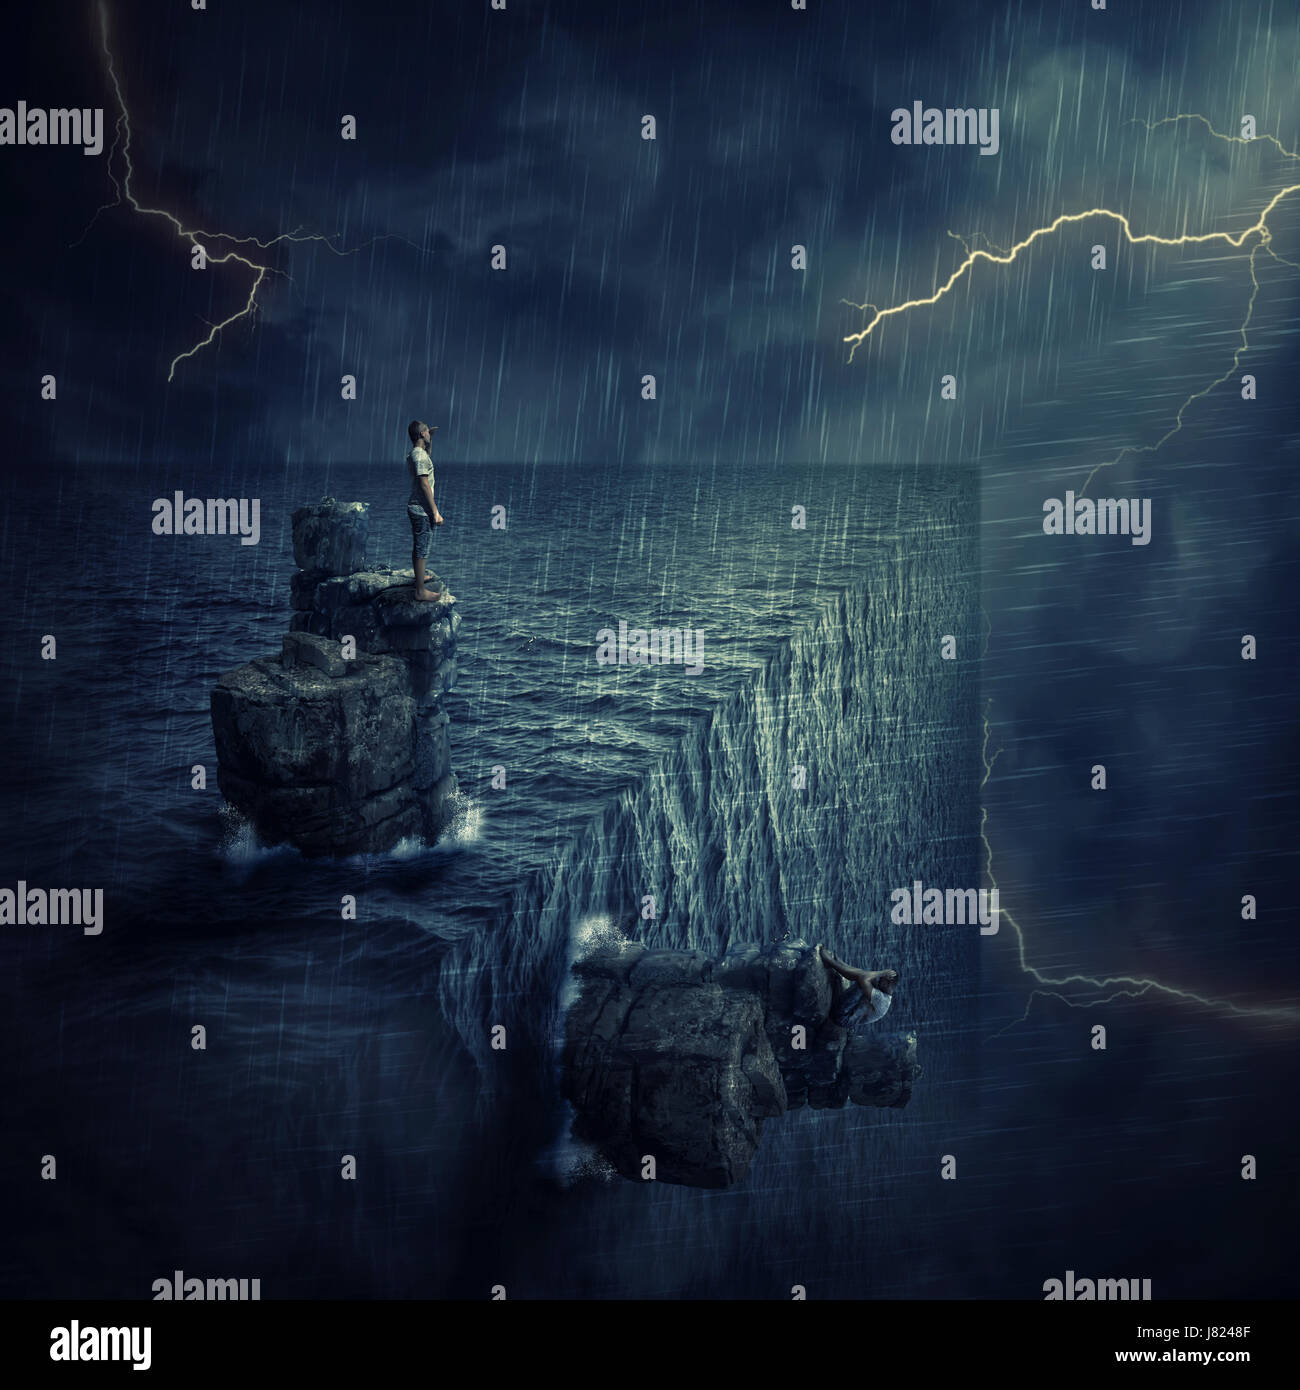 Conceptual image with a lost man sitting on a rock cliff island, in the middle of the ocean, trying to find himself - Stock Image